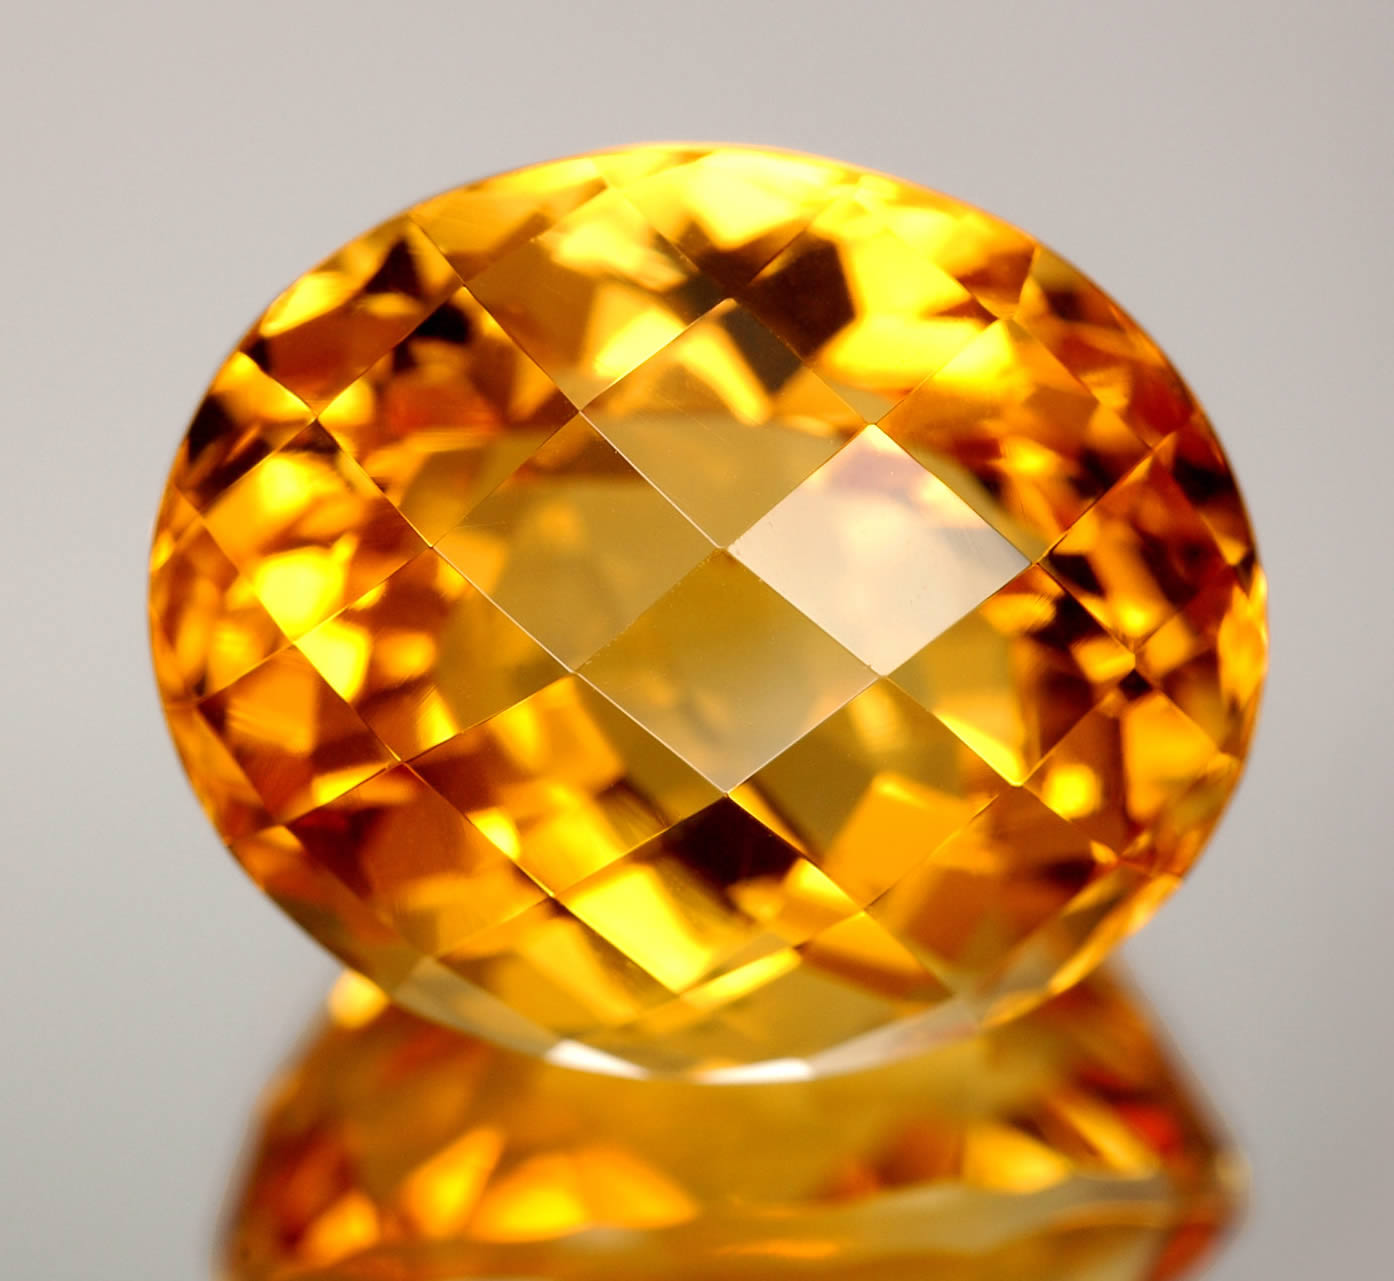 What Color Is A Natural Birthstone Topaz